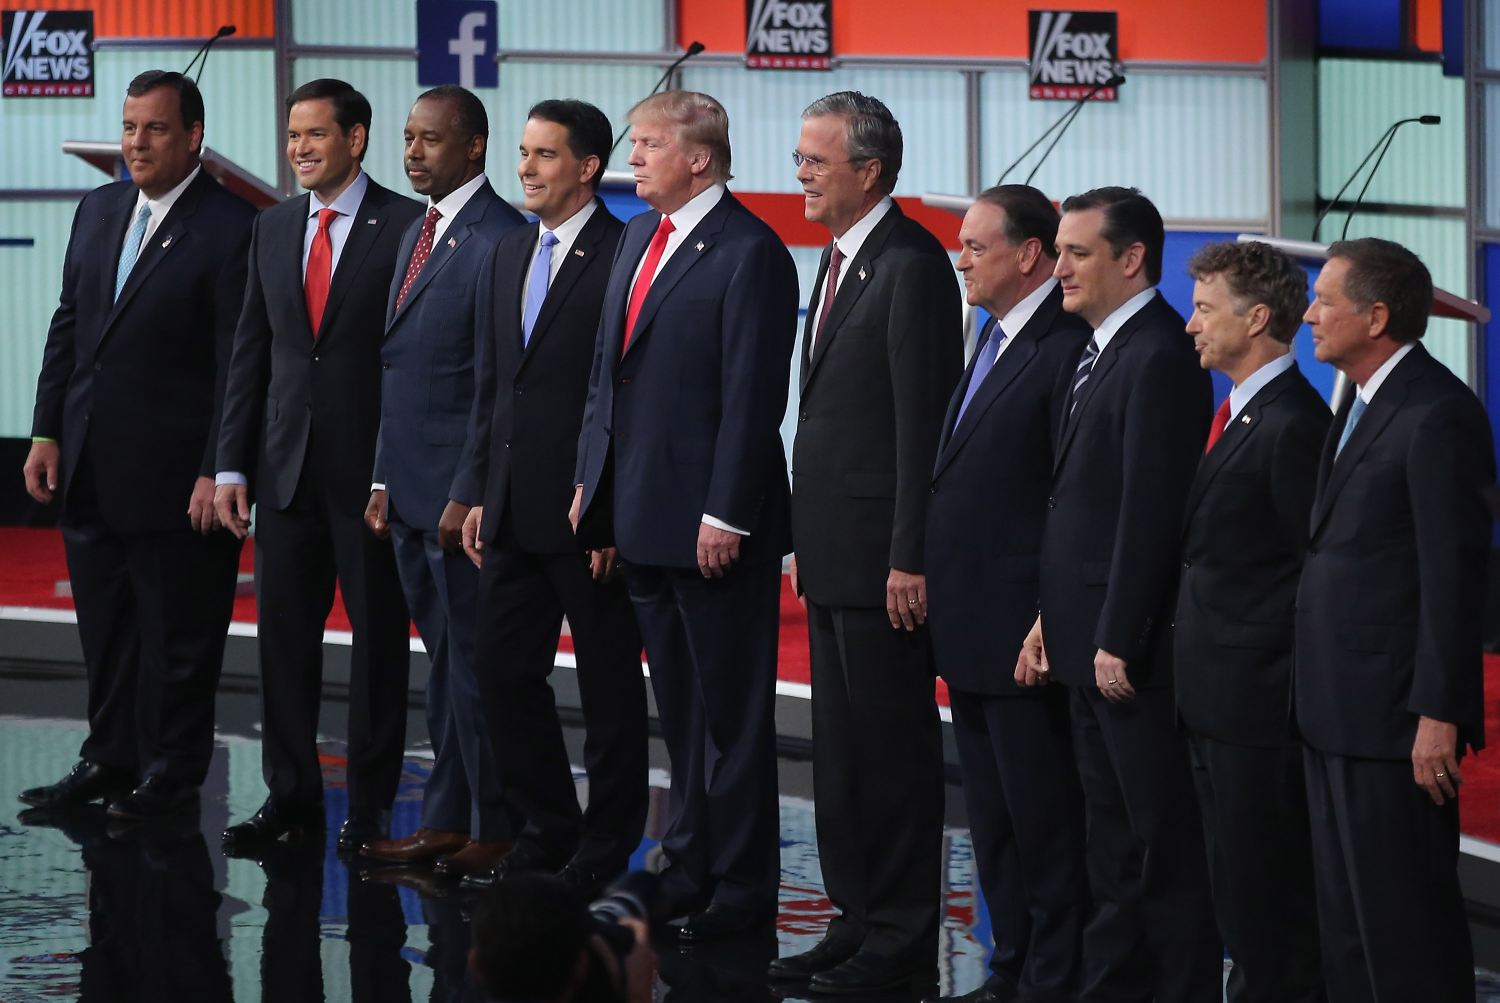 The Republican candidates for president debated in Cleveland, Ohio, on Aug. 6, 2015.